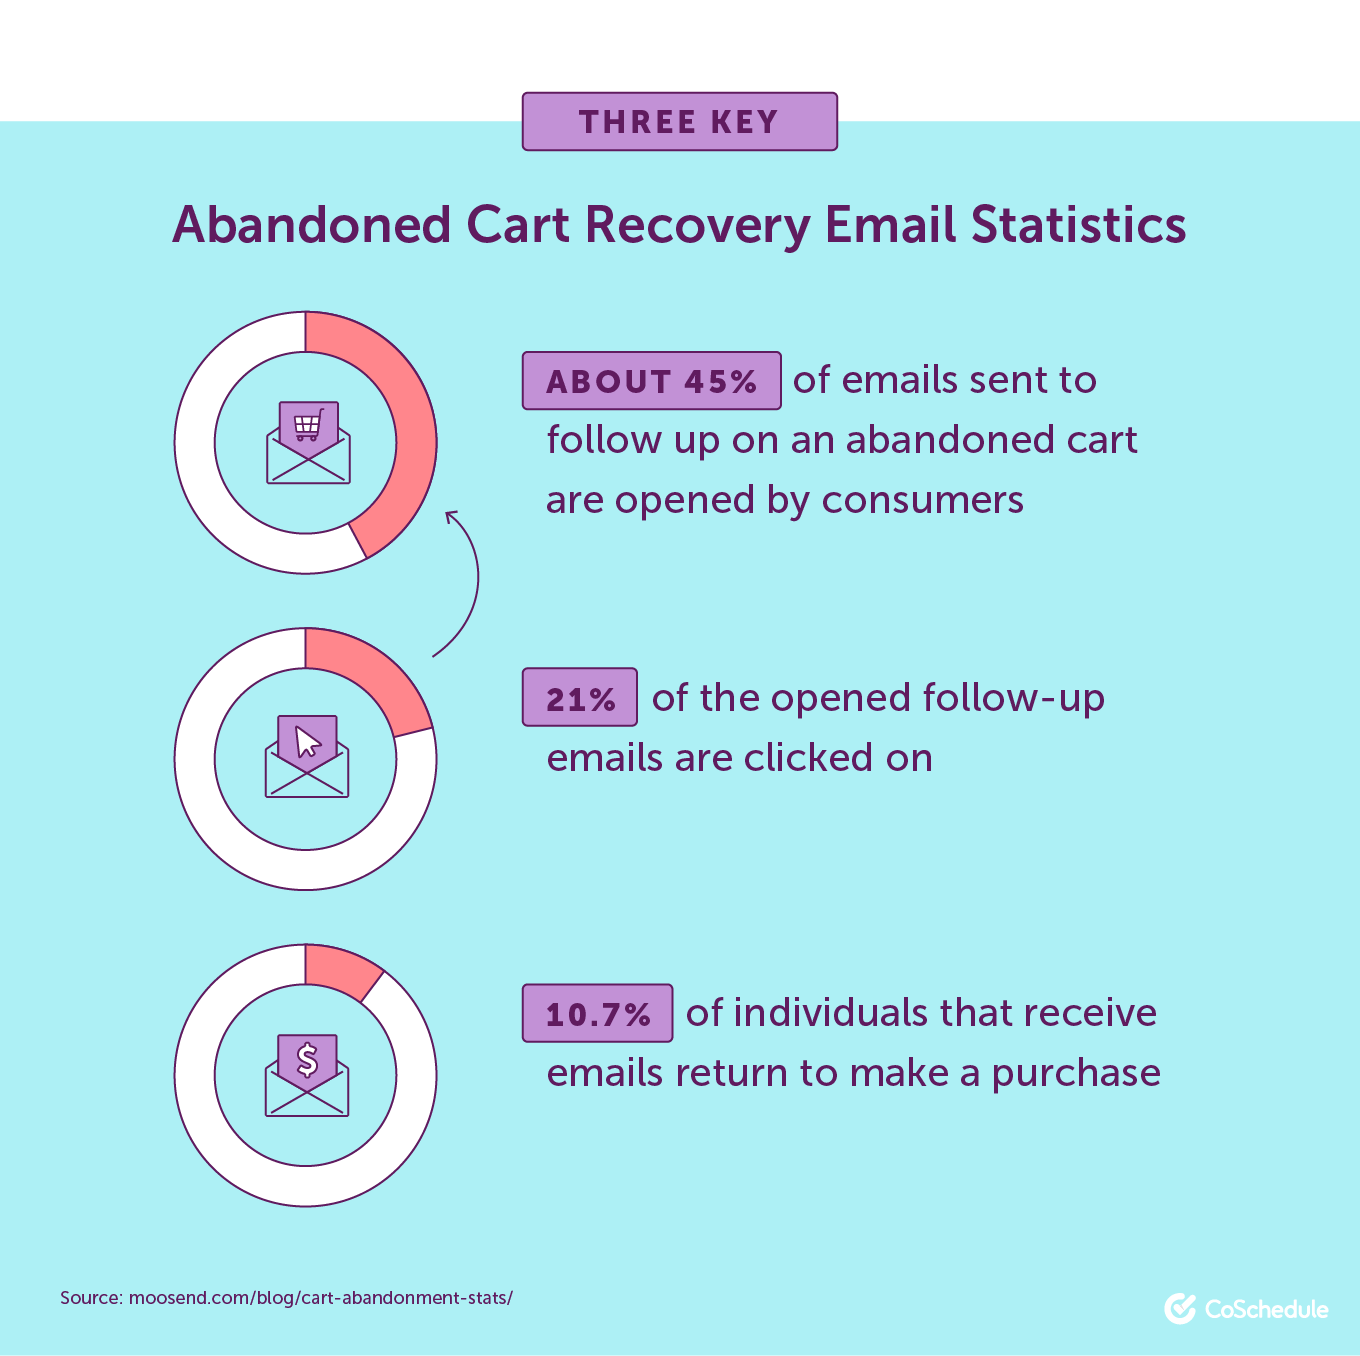 Three Key Abandoned Cart Recovery Email Statistics